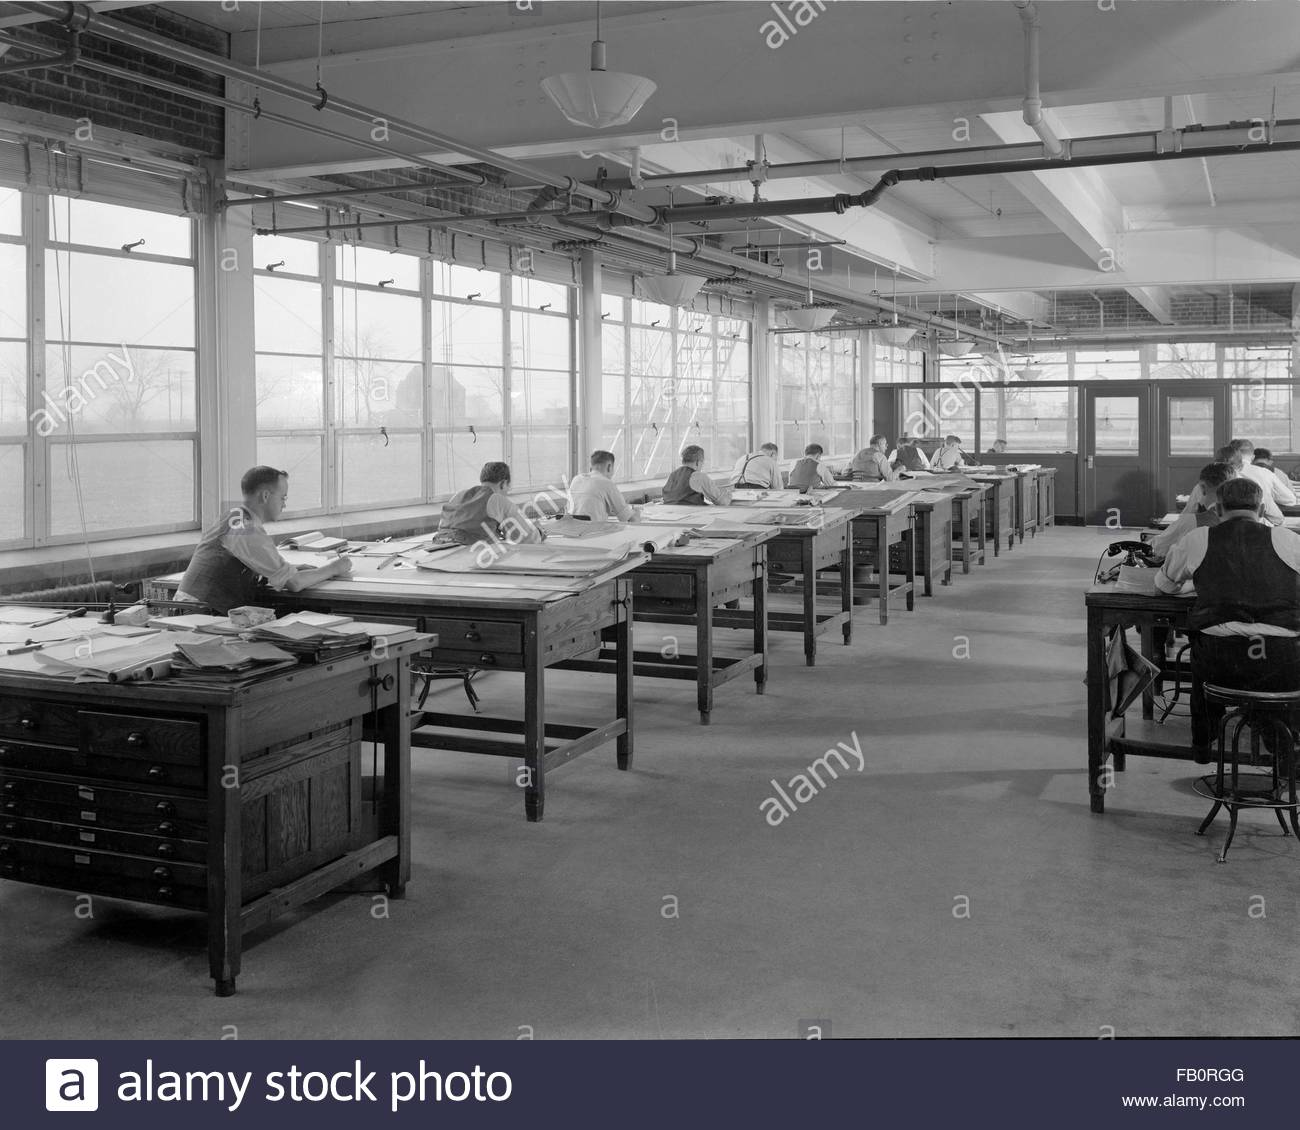 Toledo Scale plant in Ohio, 1939 Dec. 27. Rows of draftsmen working at their desks. - Stock Image